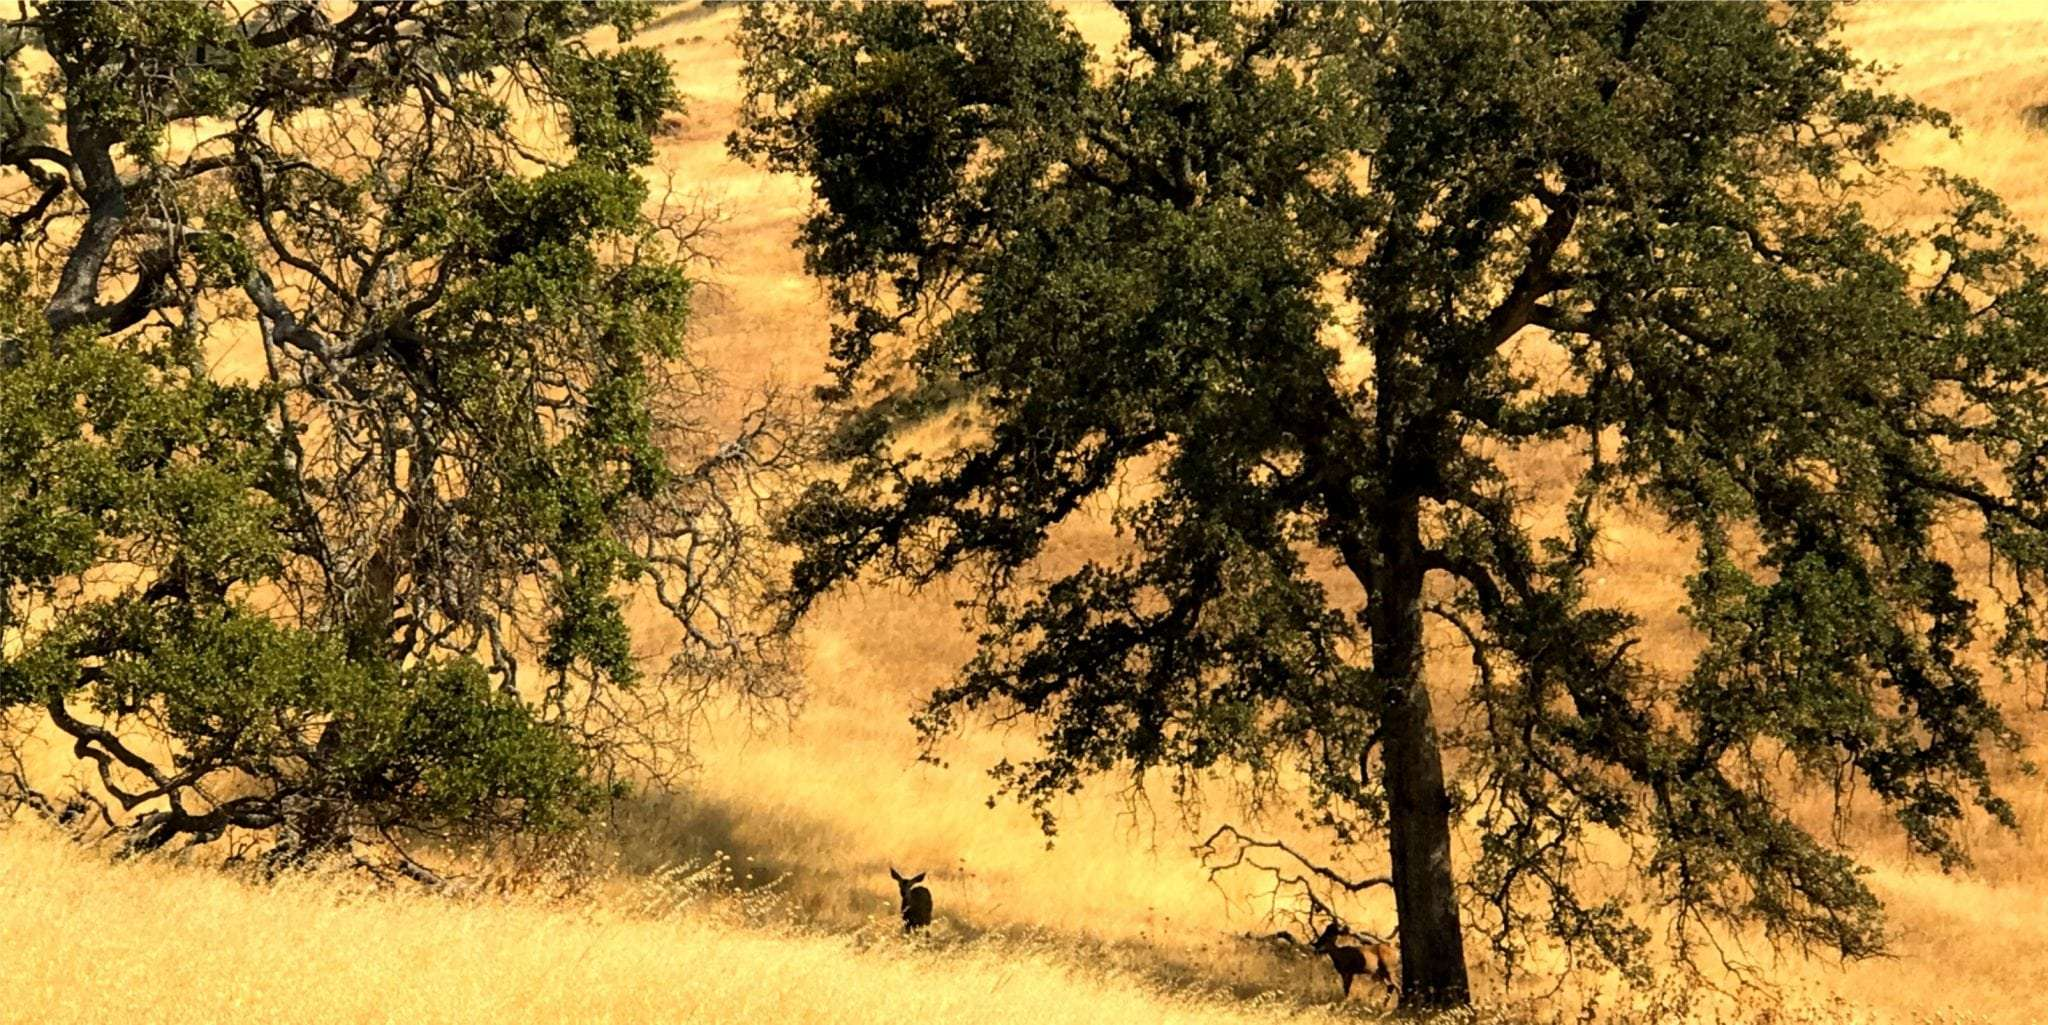 480 Ac. Grazing Land, Mariposa County